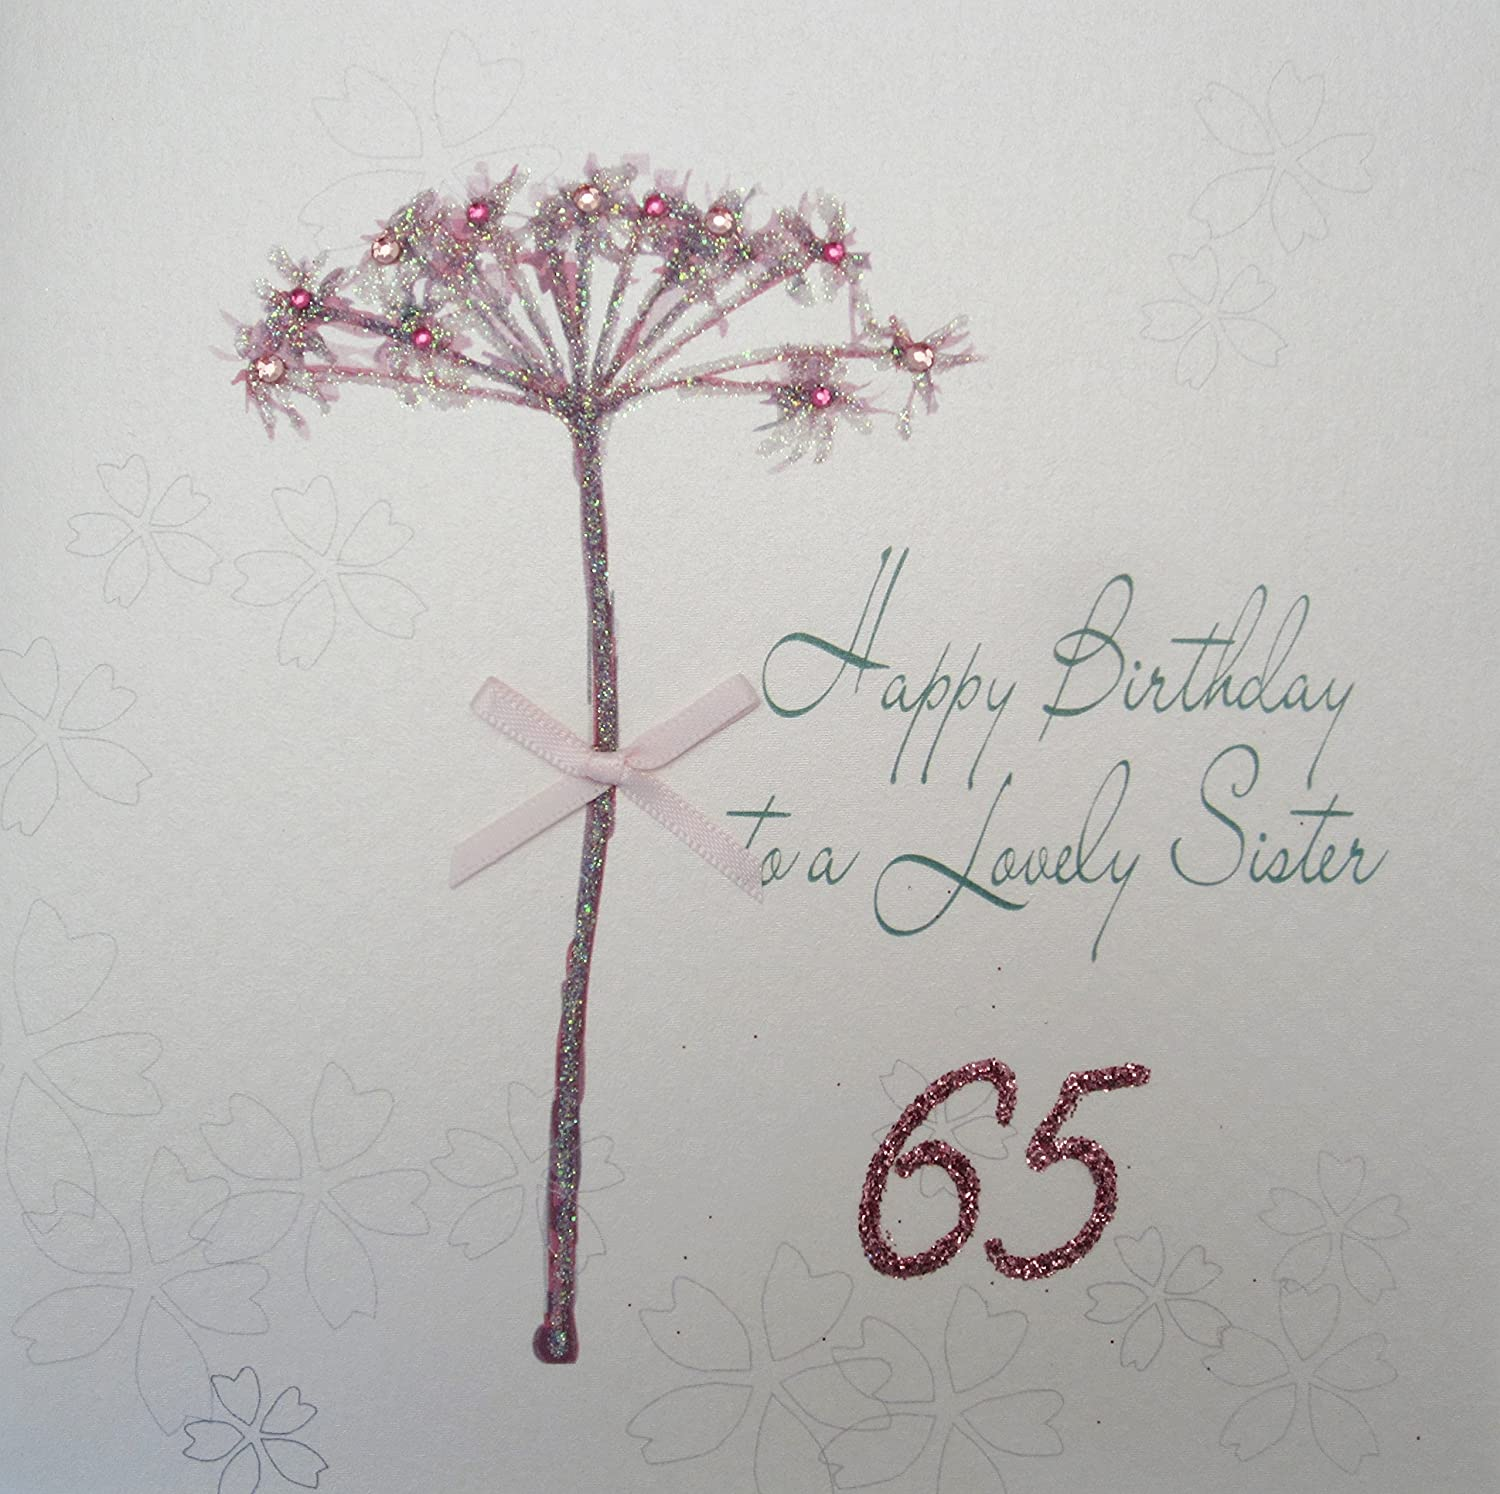 WHITE COTTON CARDS Happy Lovely Sister 65 Handmade 65th Birthday Card Dandelion